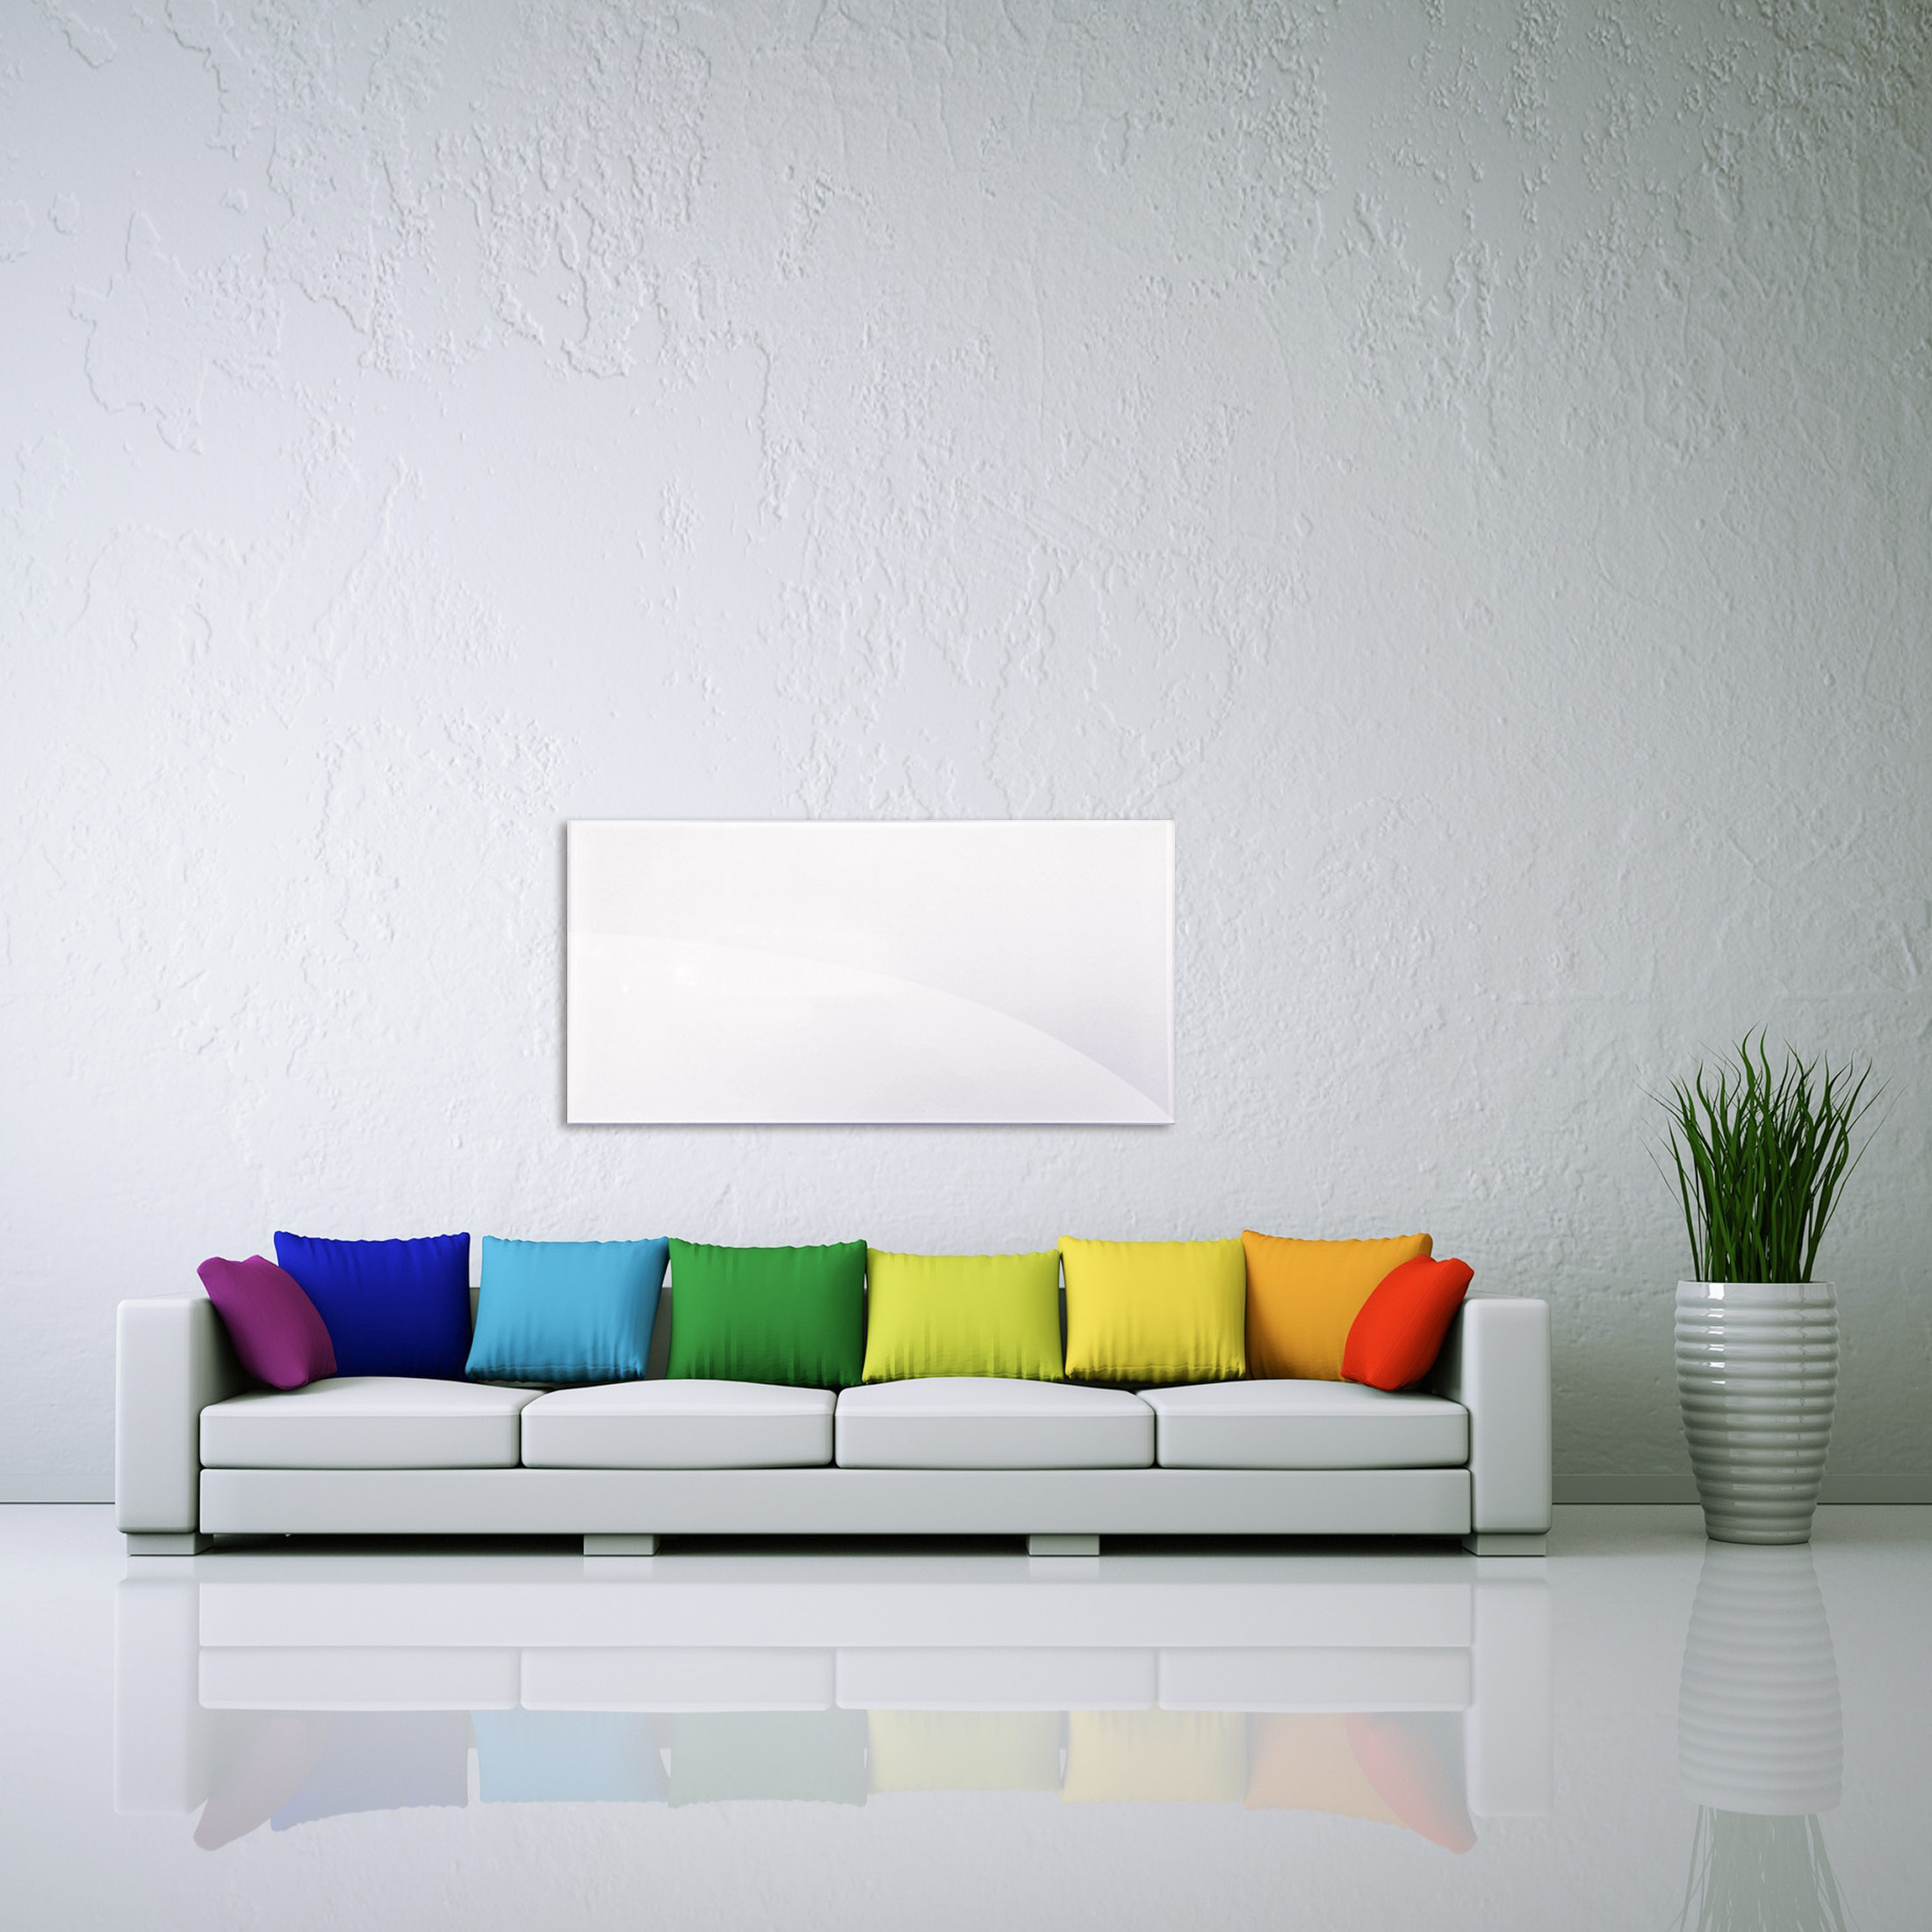 Buy-panel-heater-for-wall-ceiling-flat-for-smart-heating